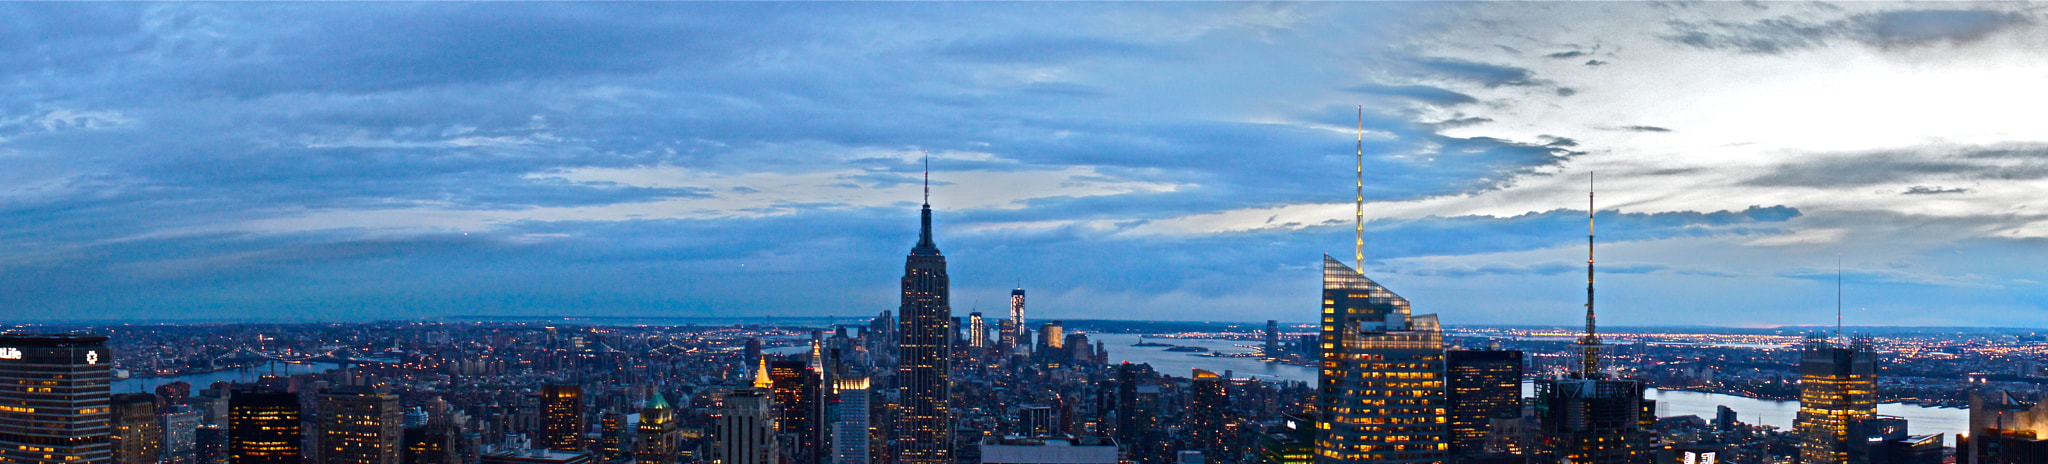 Photograph The City That Never Sleeps N.Y. <3 by Konstantinos Moi on 500px